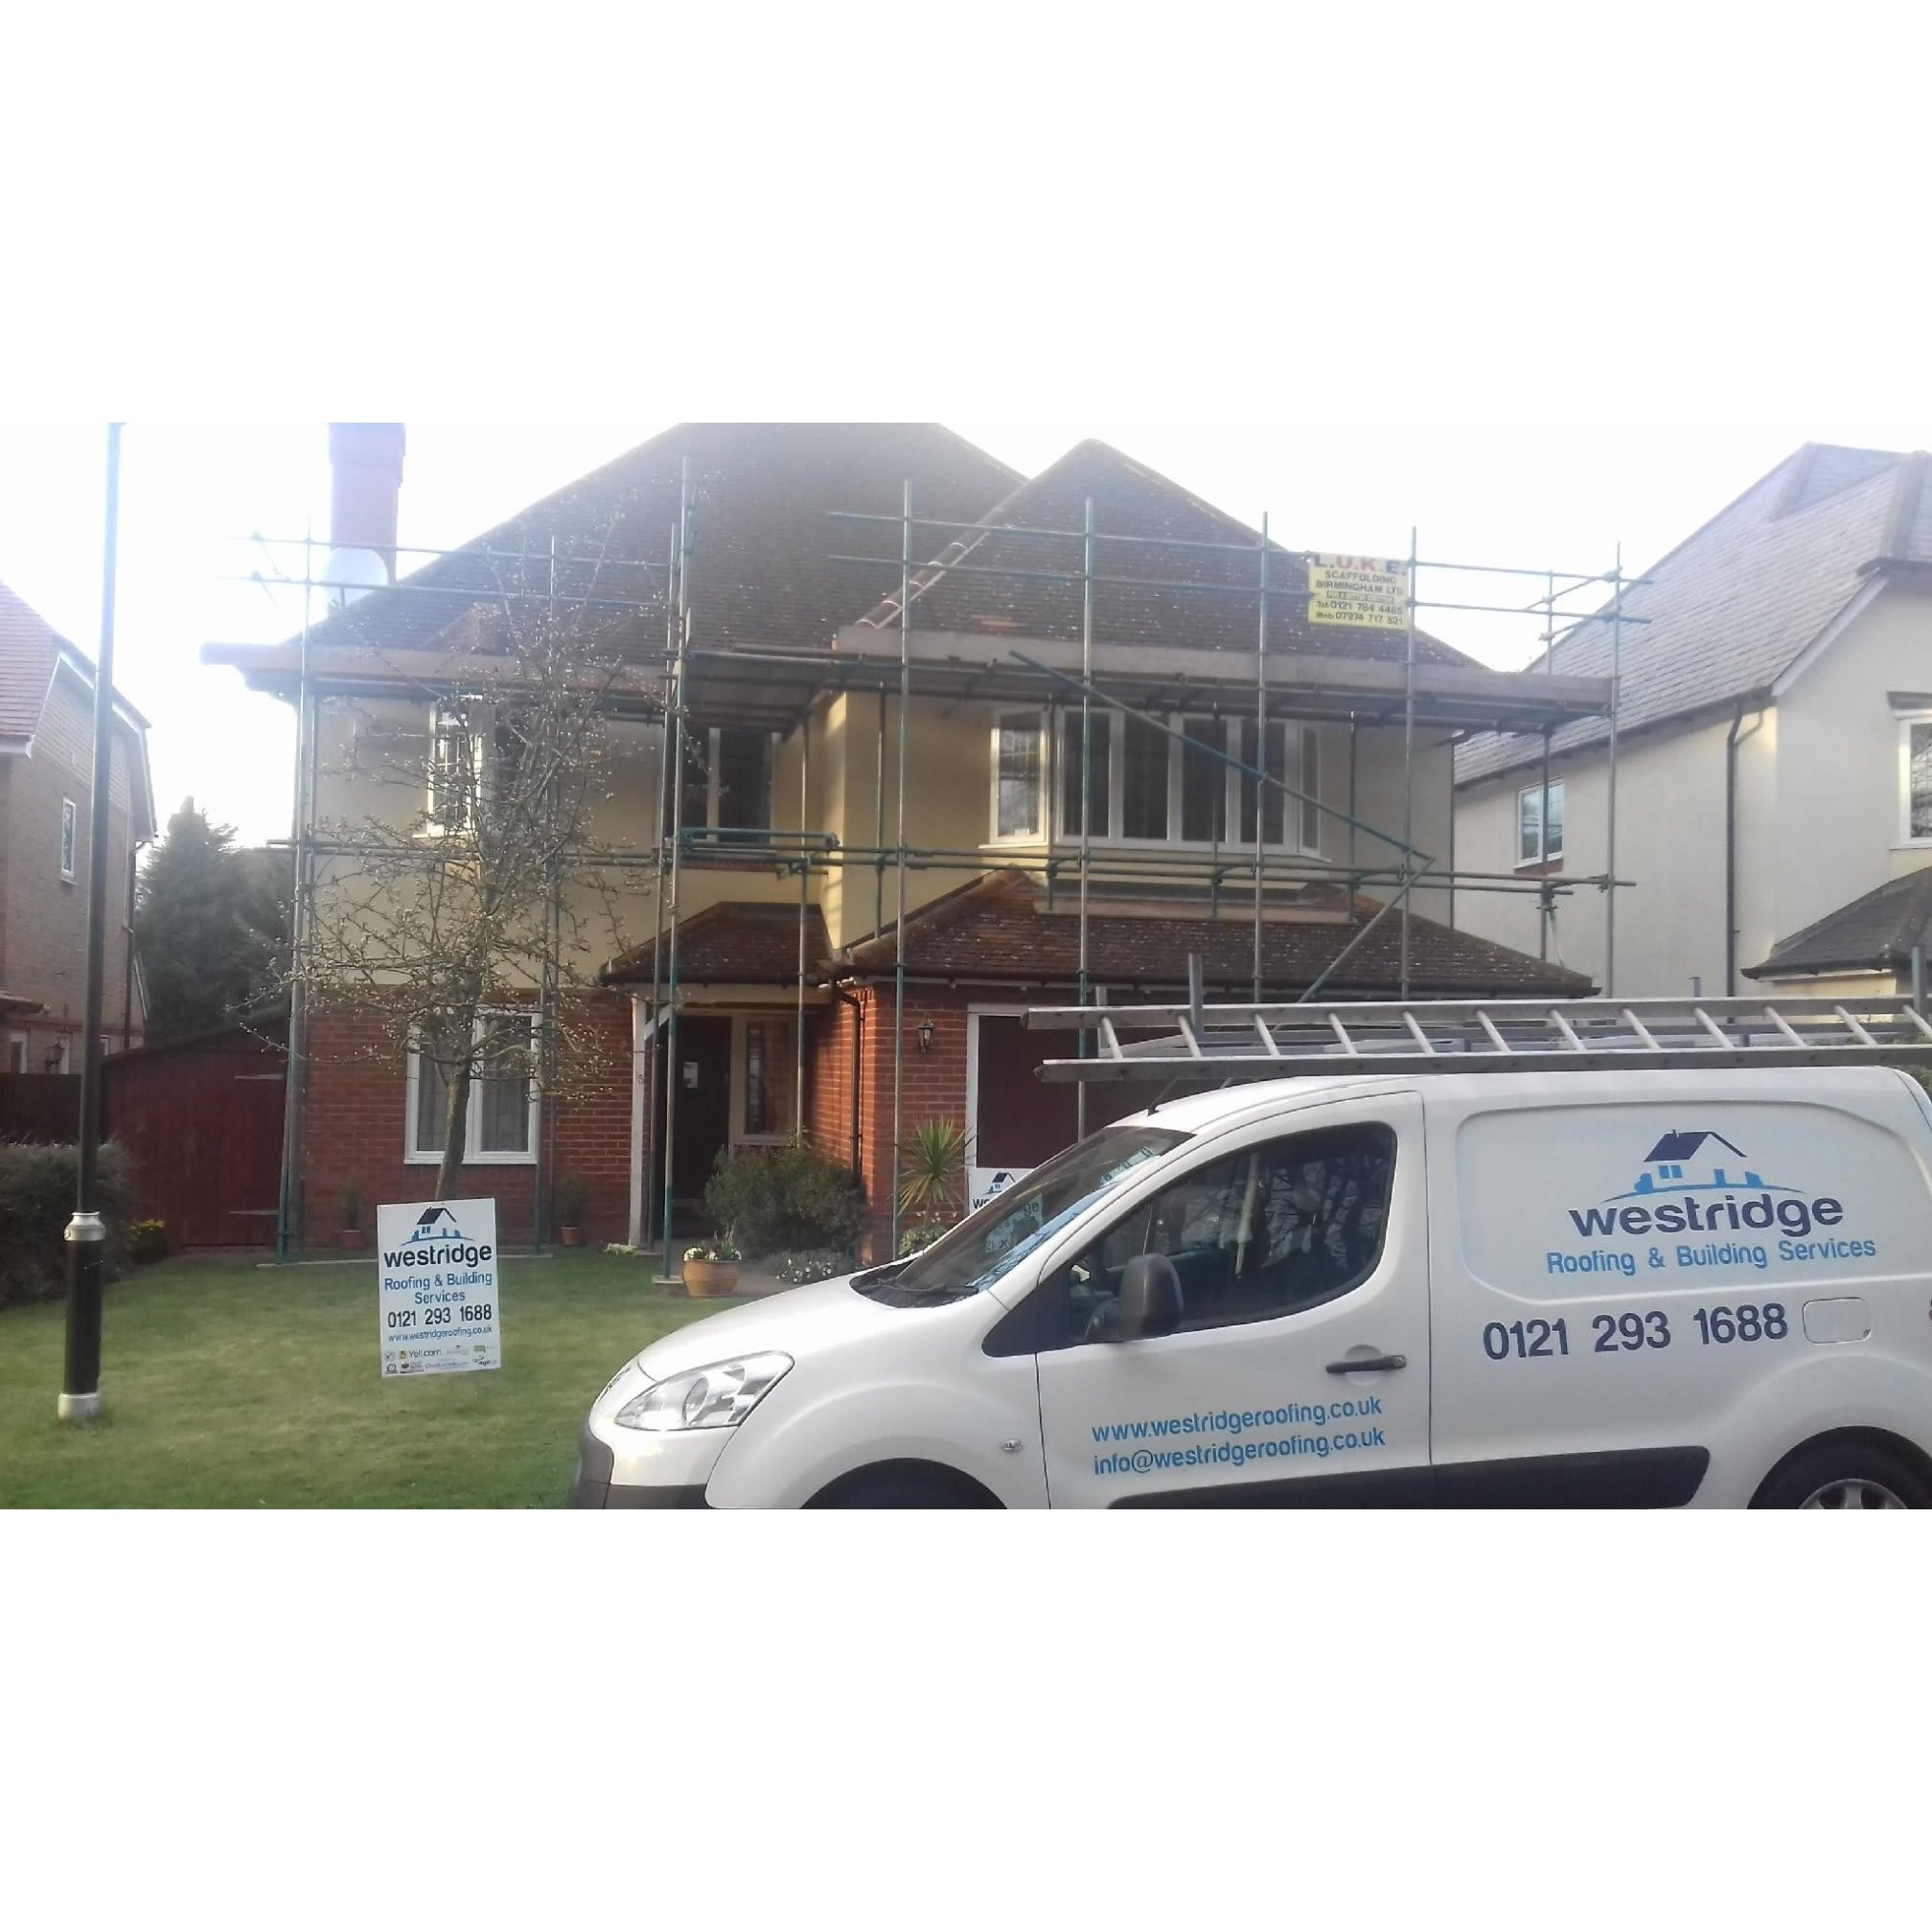 Westridge Roofing And Building Services